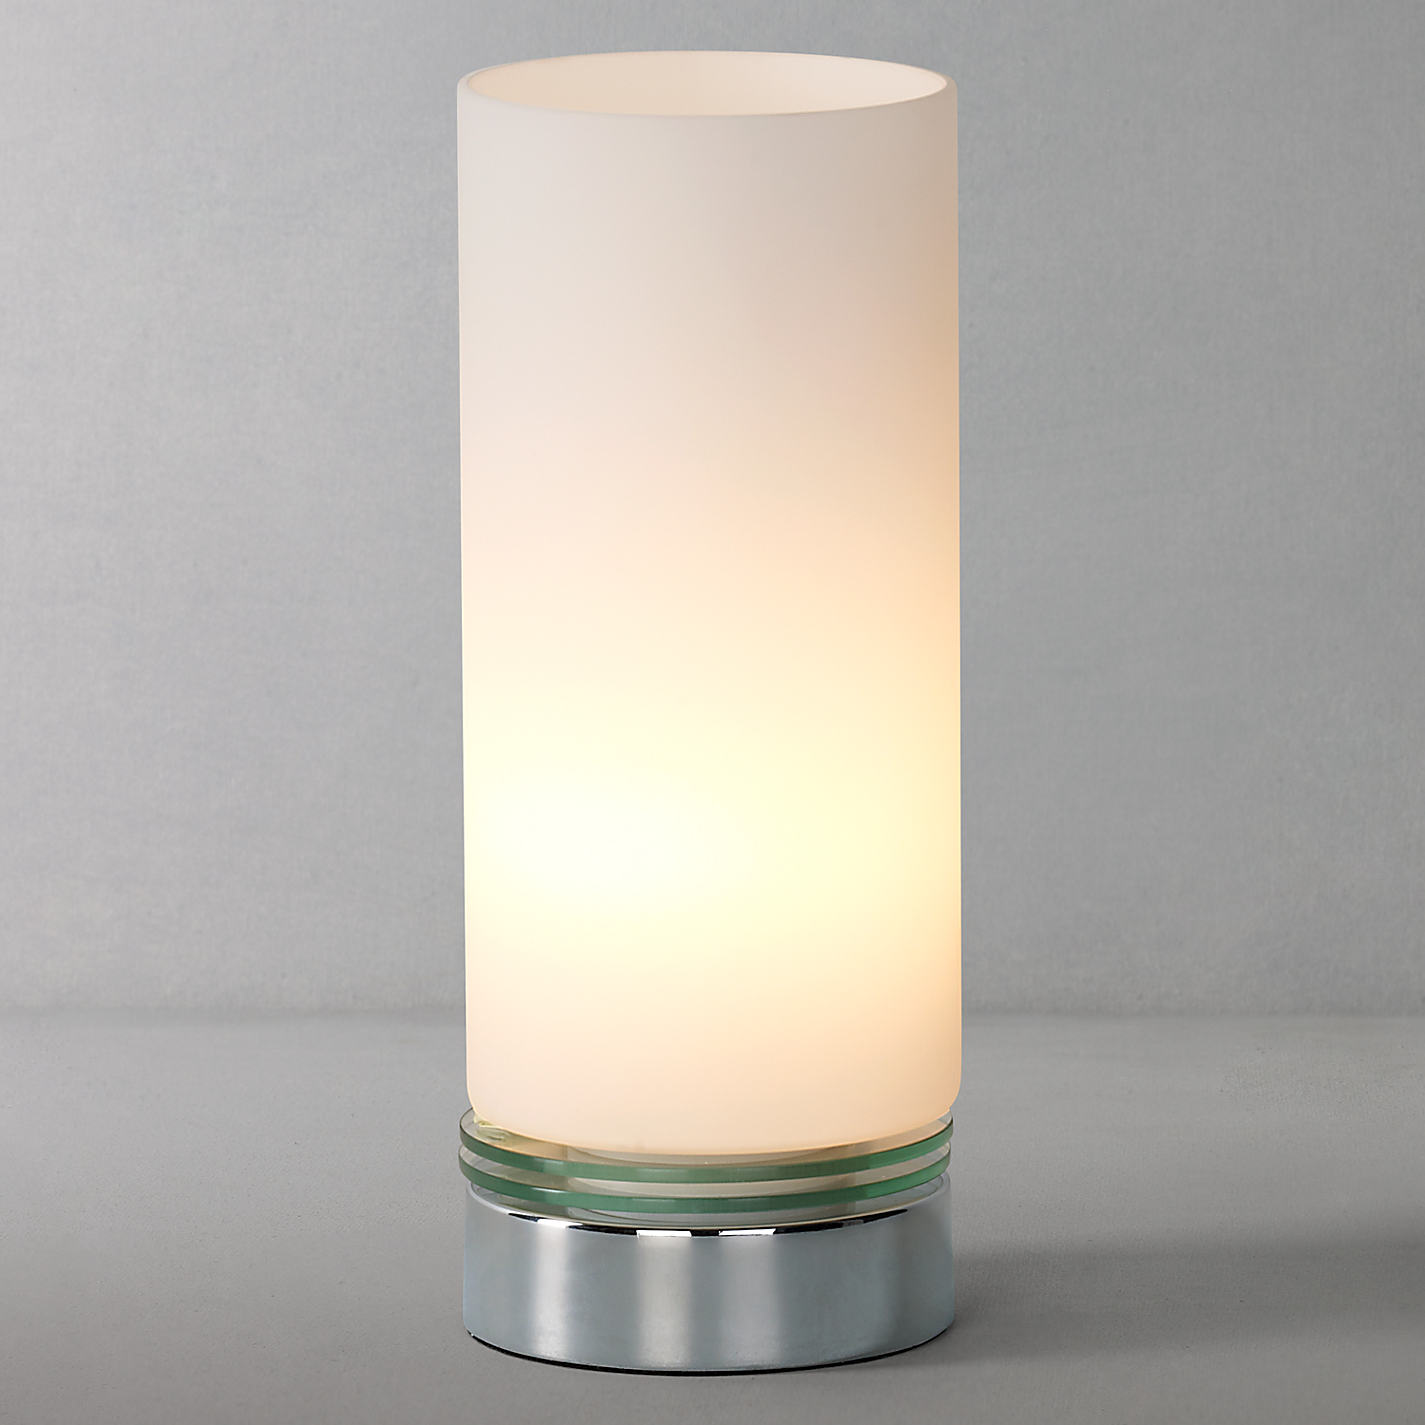 Buy john lewis dexter touch lamp john lewis buy john lewis dexter touch lamp online at johnlewis geotapseo Image collections